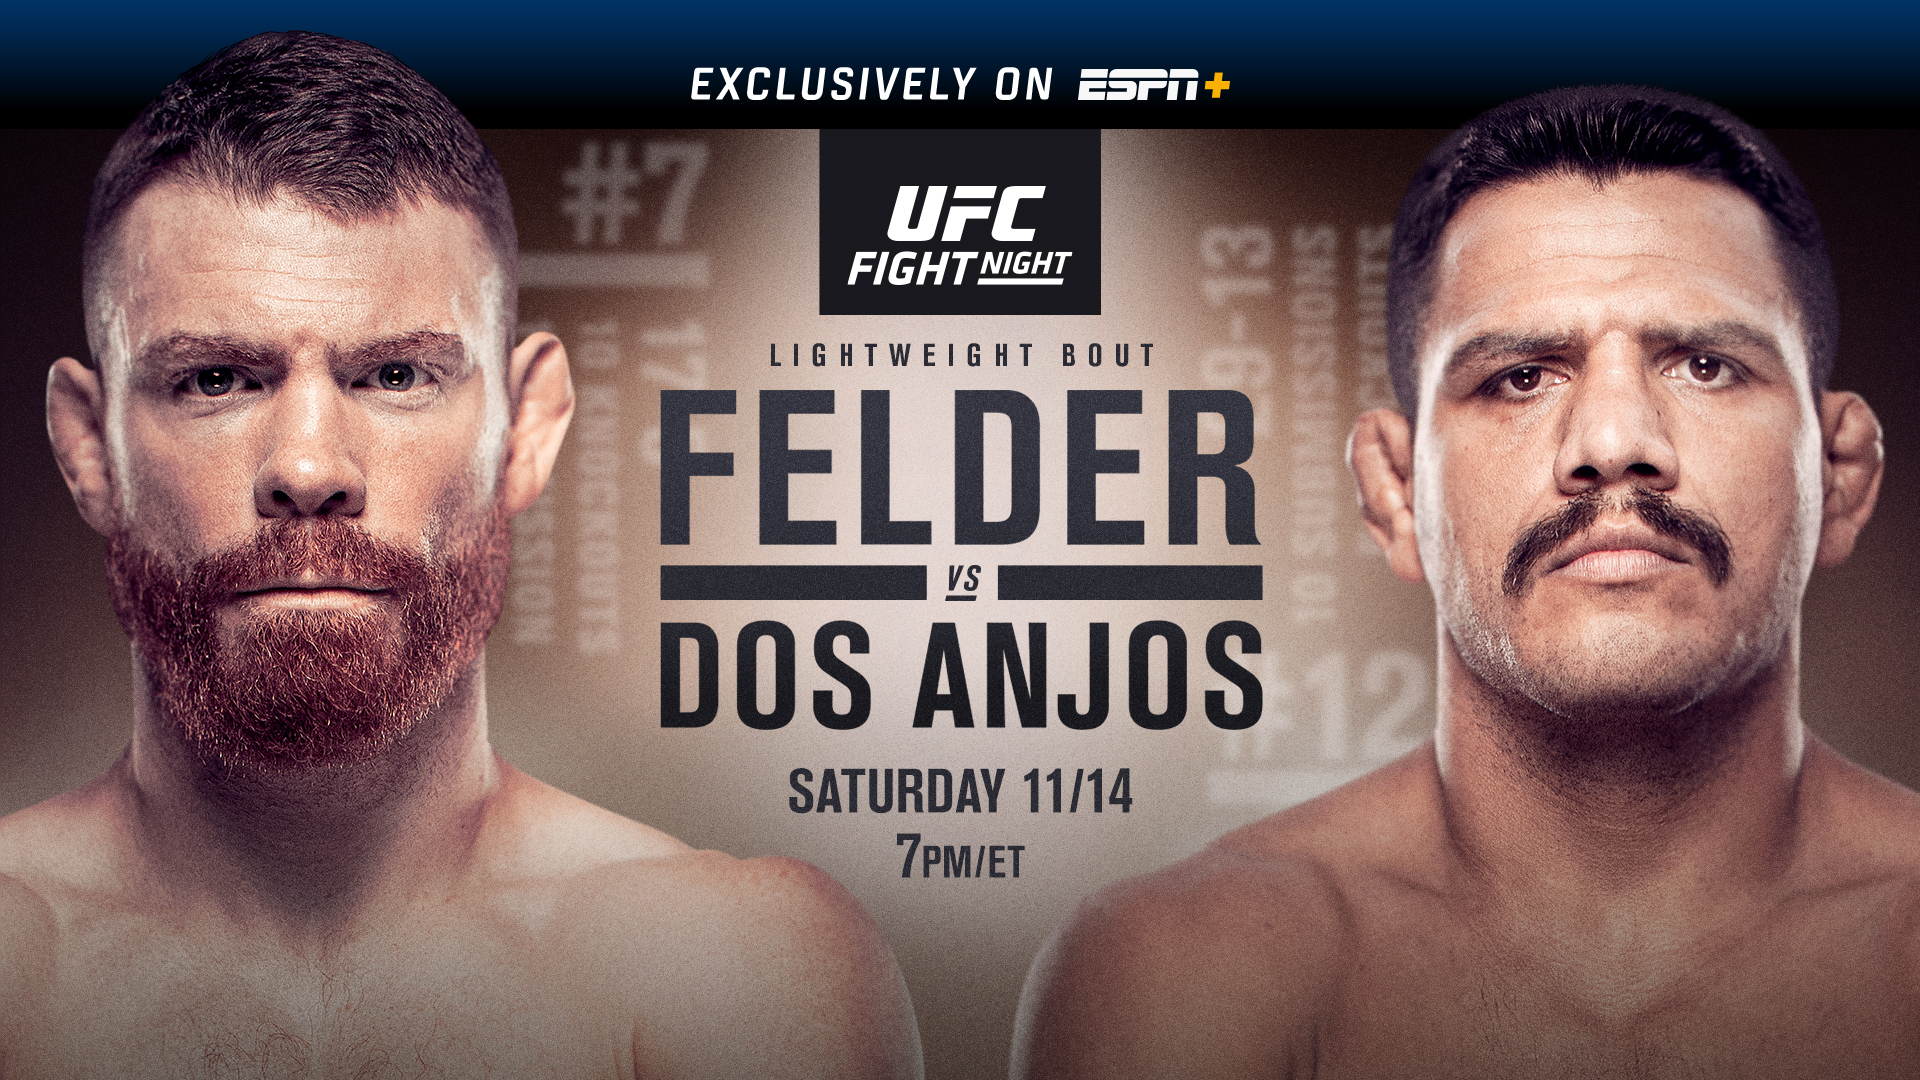 Watch UFC Fight Night 183: Felder vs. dos Anjos 11/14/20